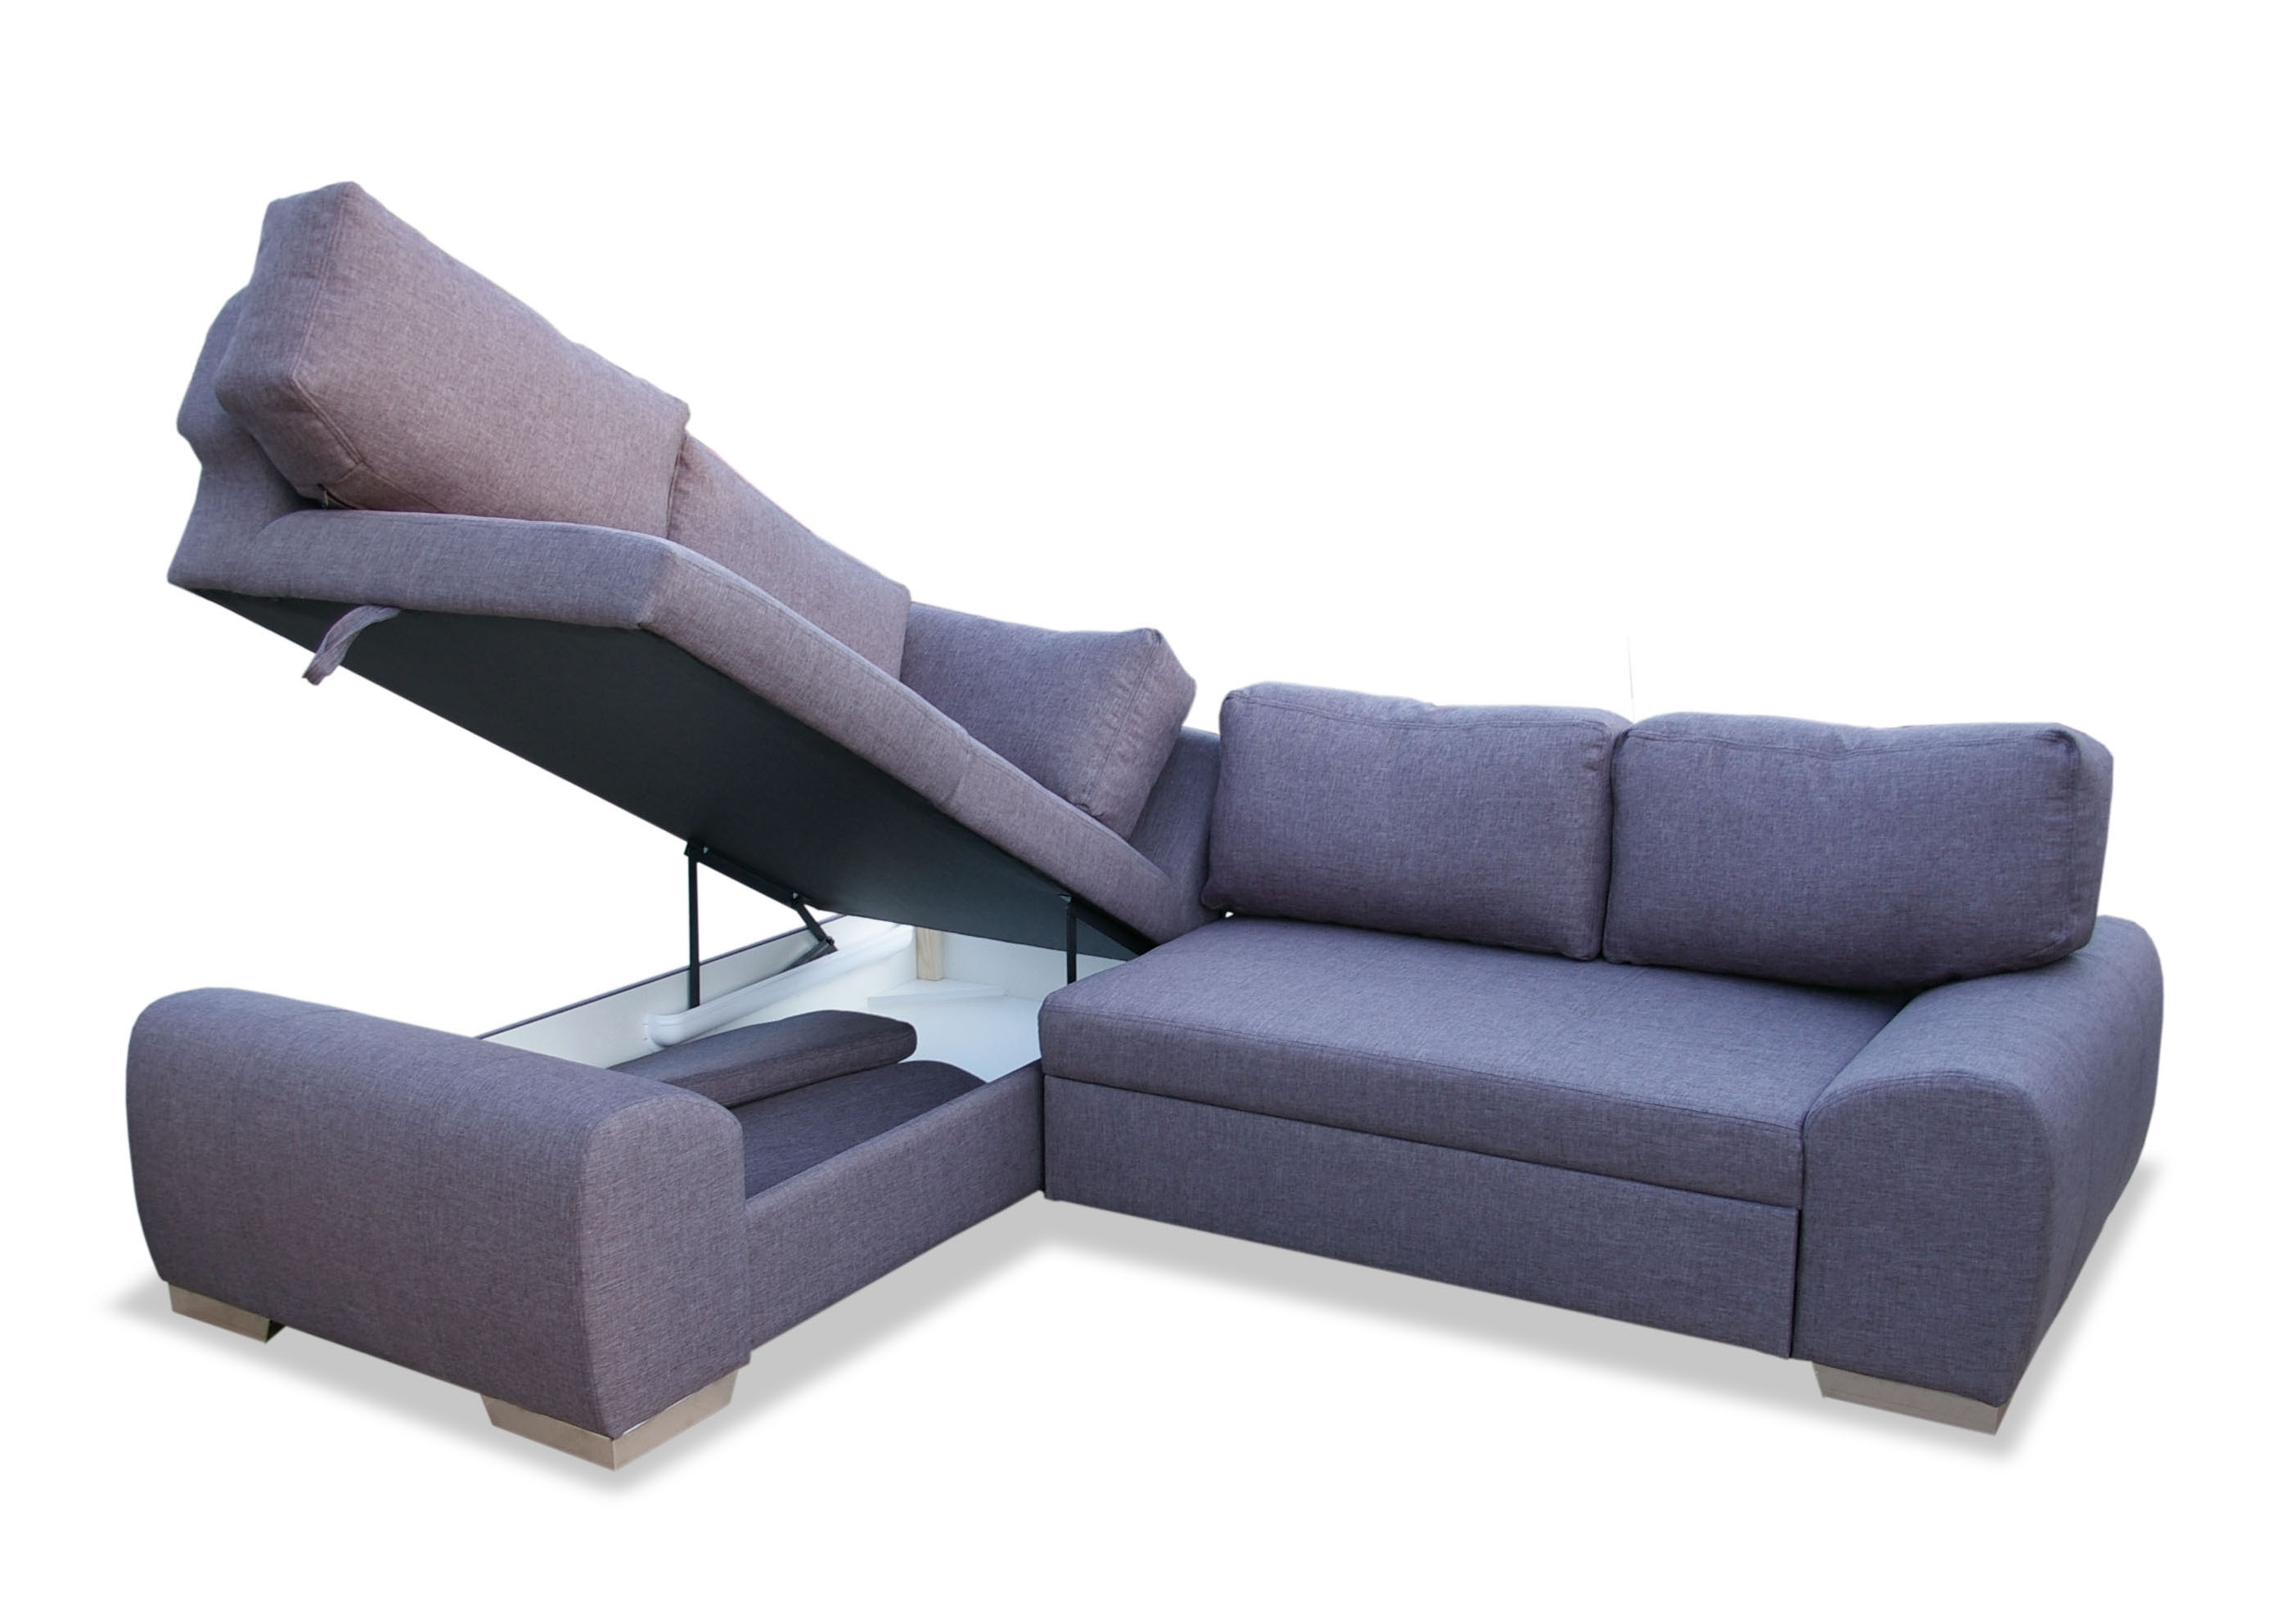 Sectional Sofa With Storage - Quantiply.co intended for Sectional Sofas With Storage (Image 8 of 10)